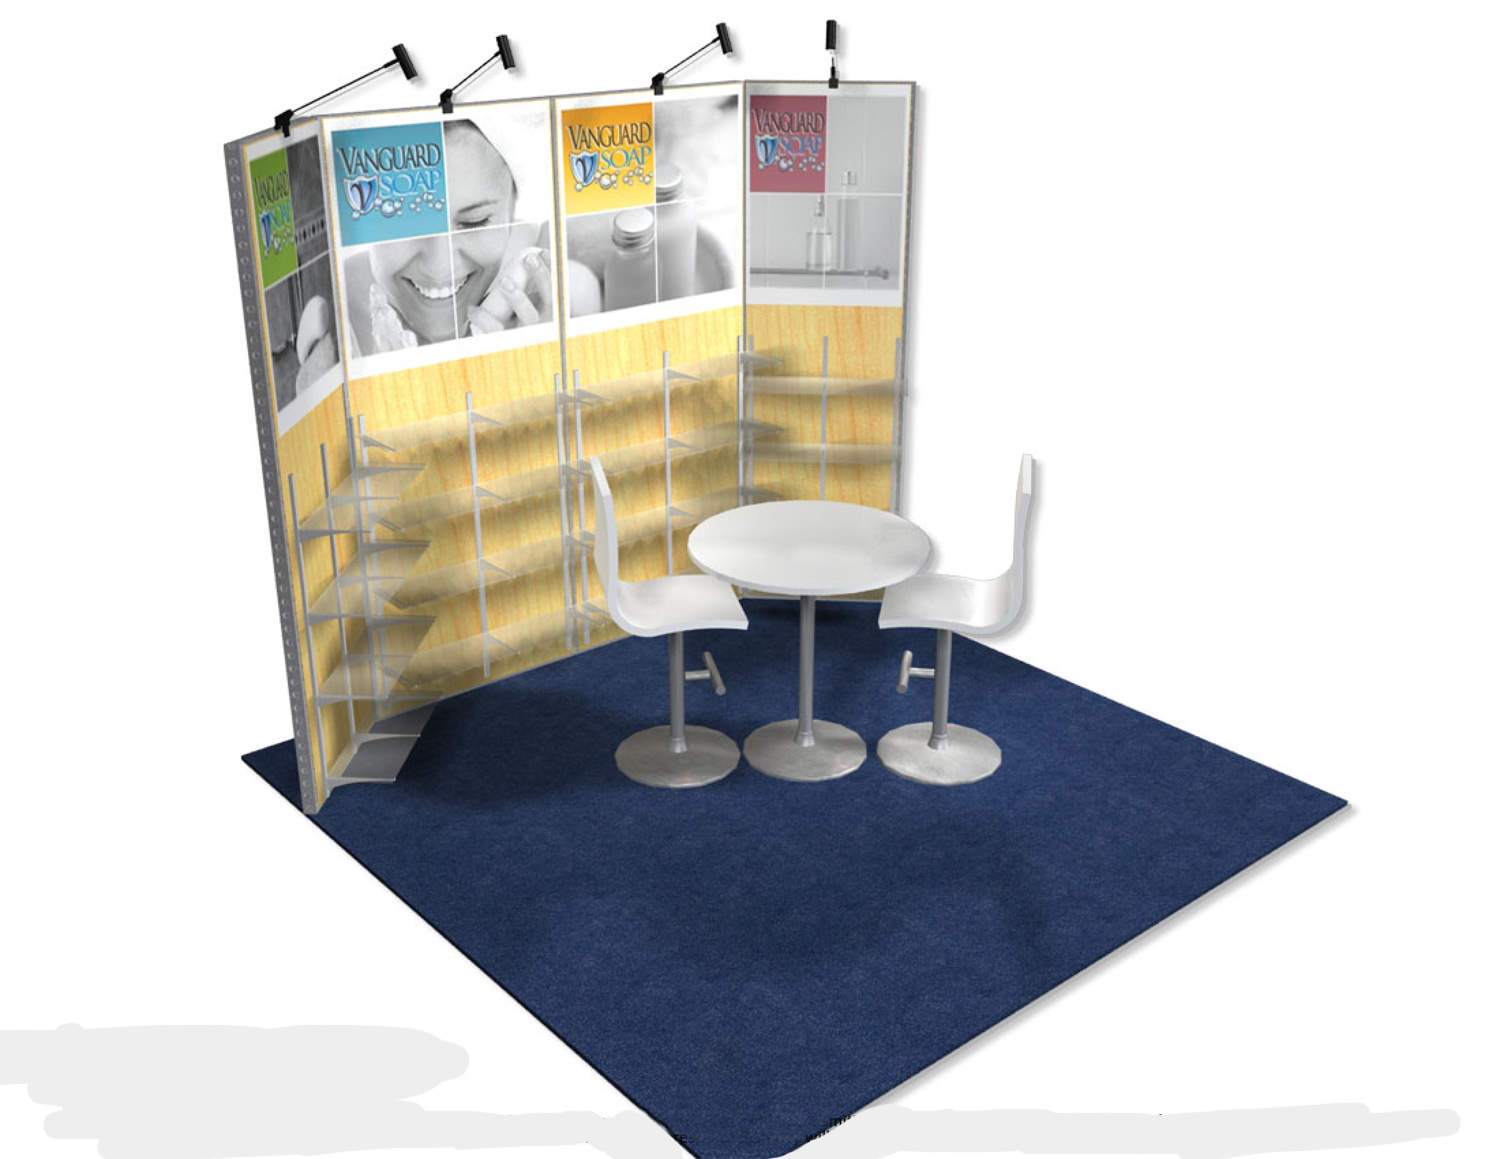 Vanguard Soap - 10x10 Trade Show Booth - Booth Design Ideas